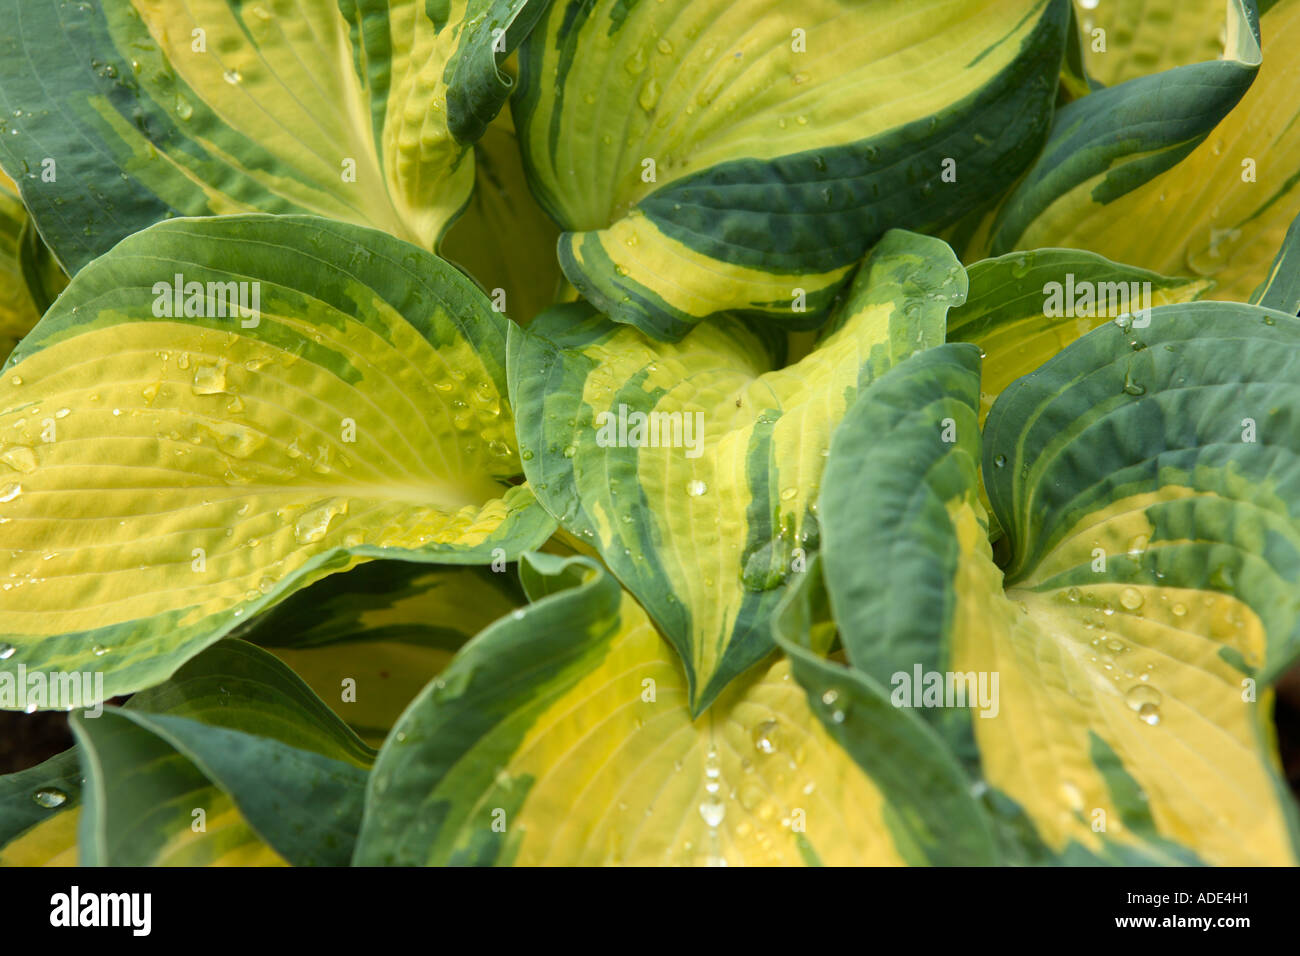 Plant With Large Yellow And Green Leaves Stock Photo 7652624 Alamy